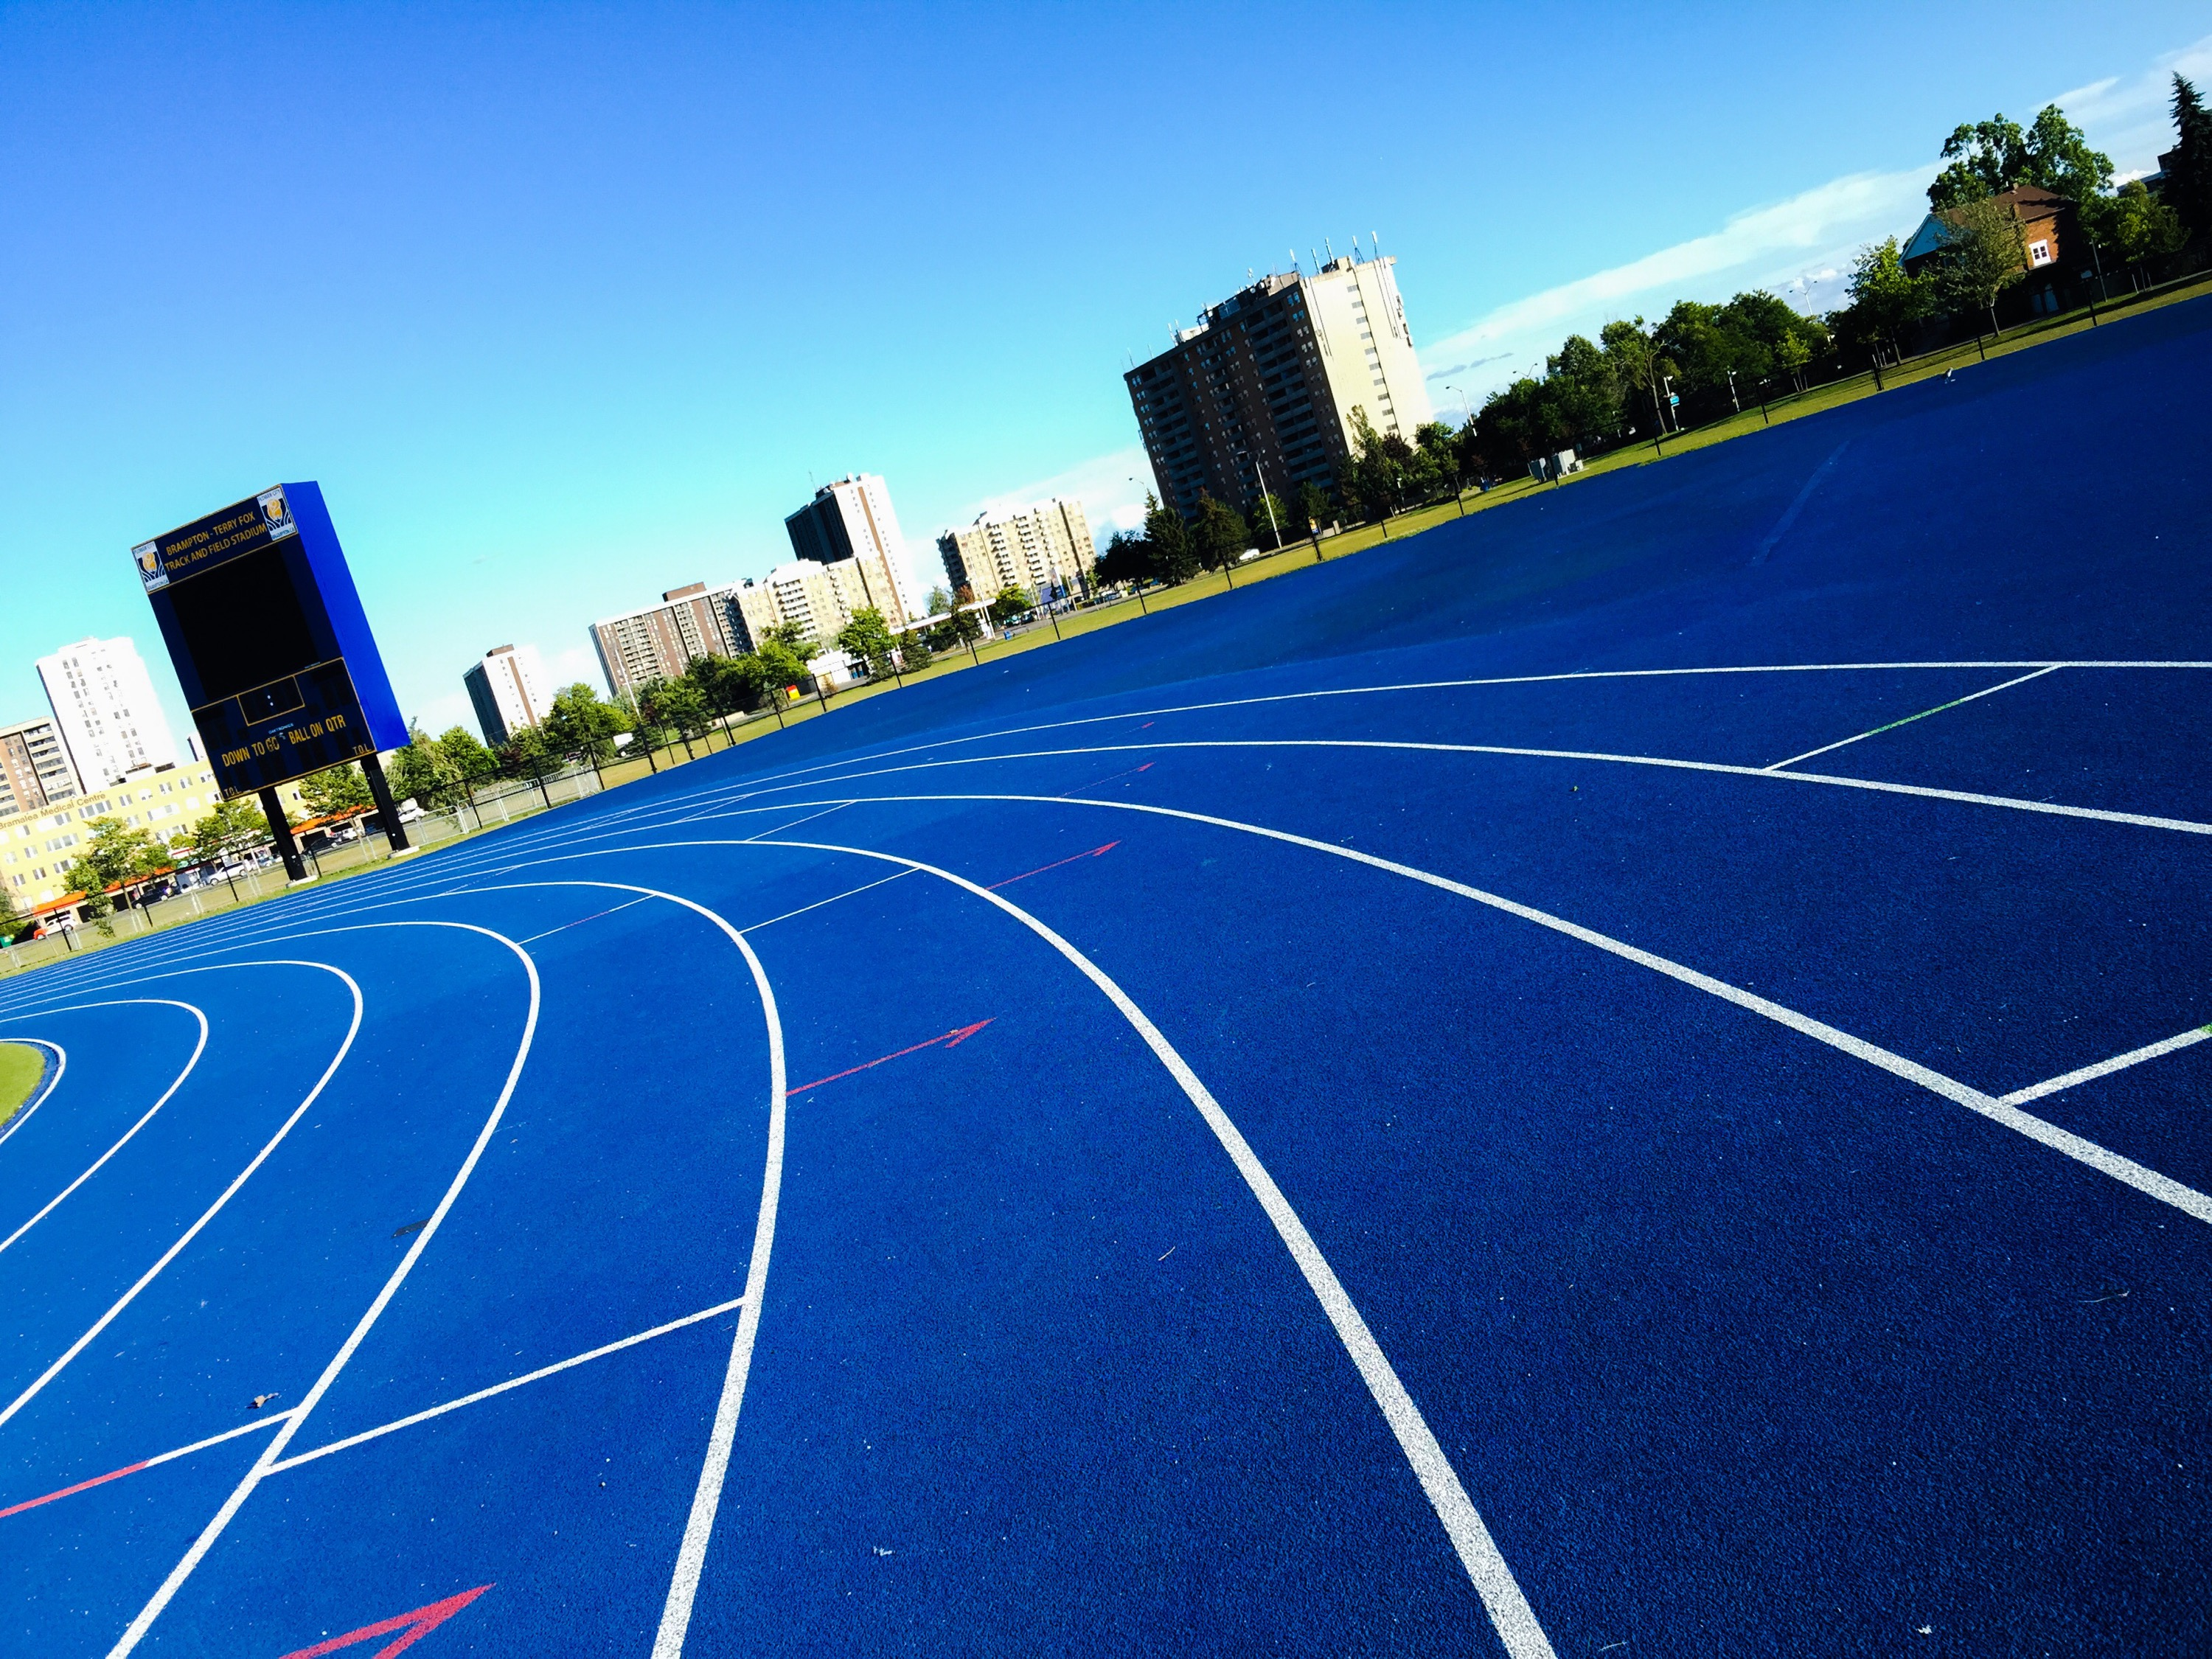 Terry Fox Track and Field Stadium